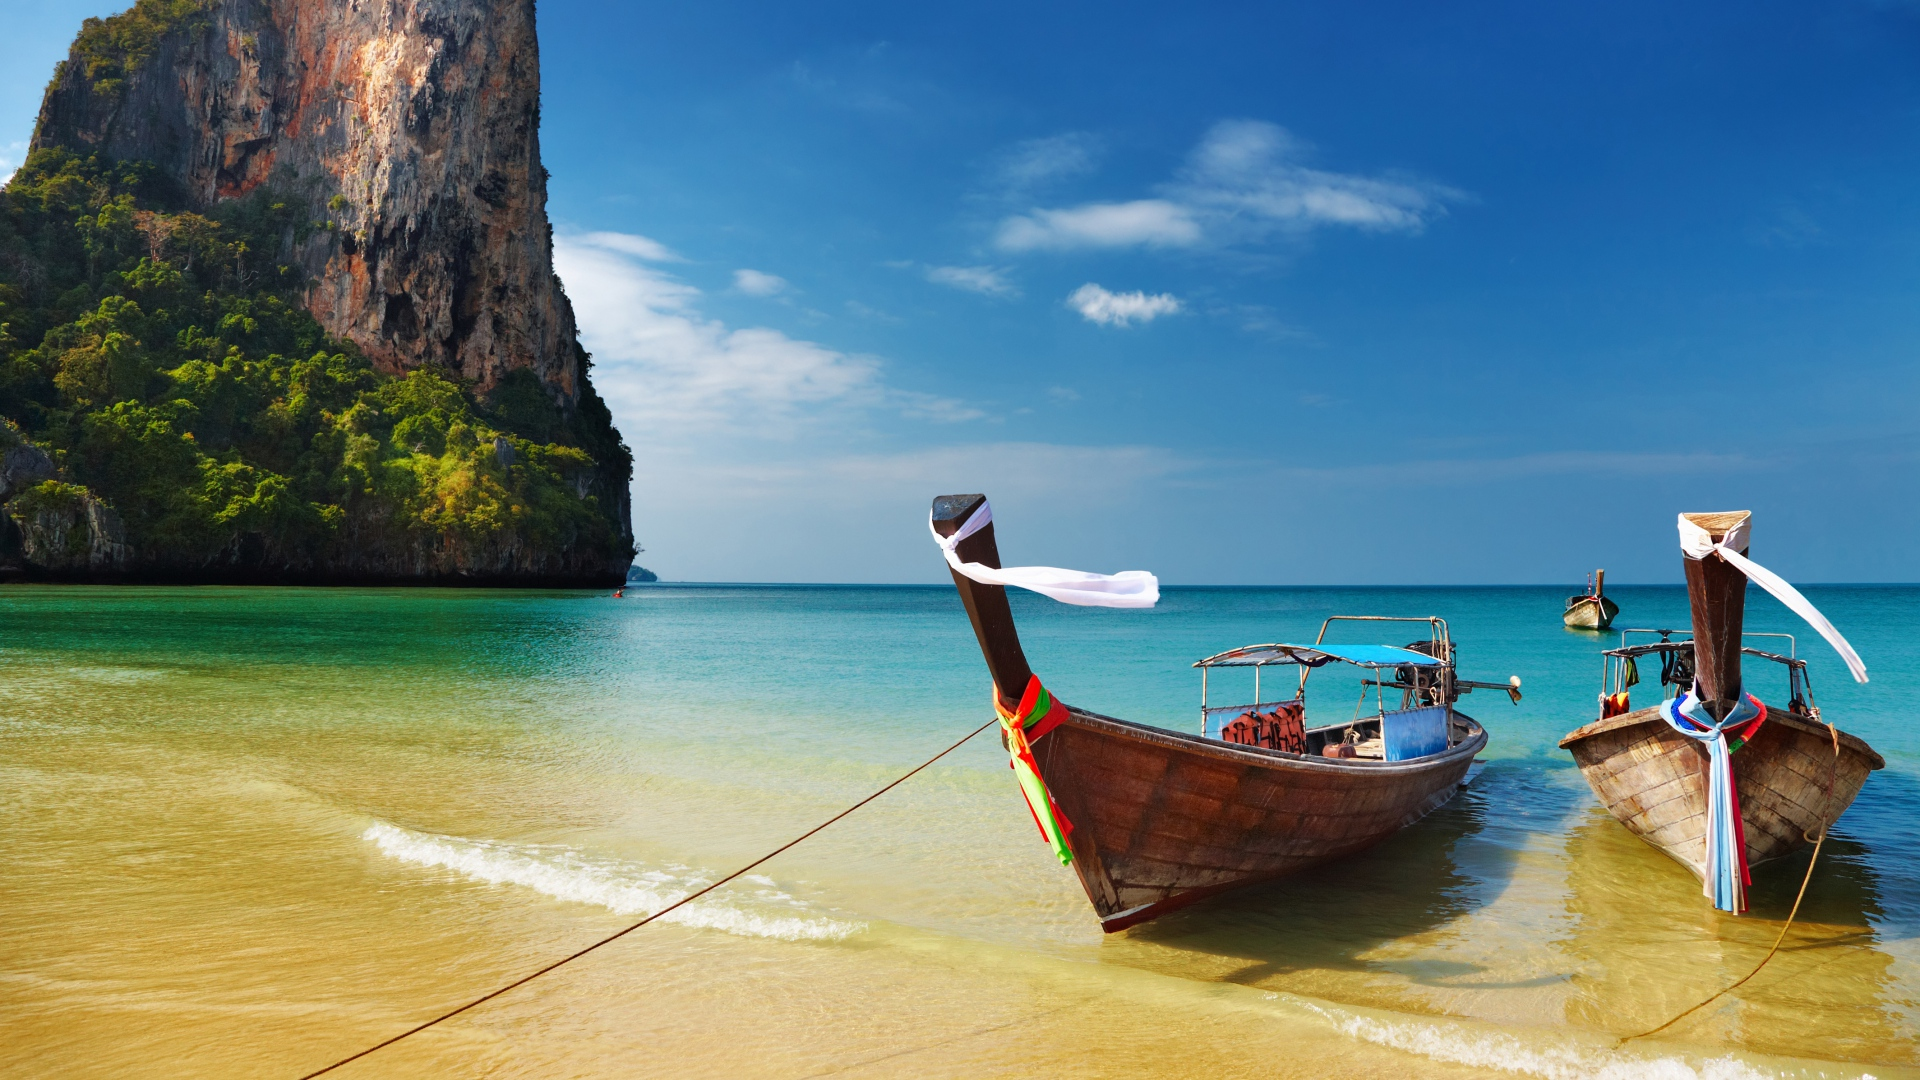 Full HD 1080p Thailand Wallpapers HD, Desktop Backgrounds